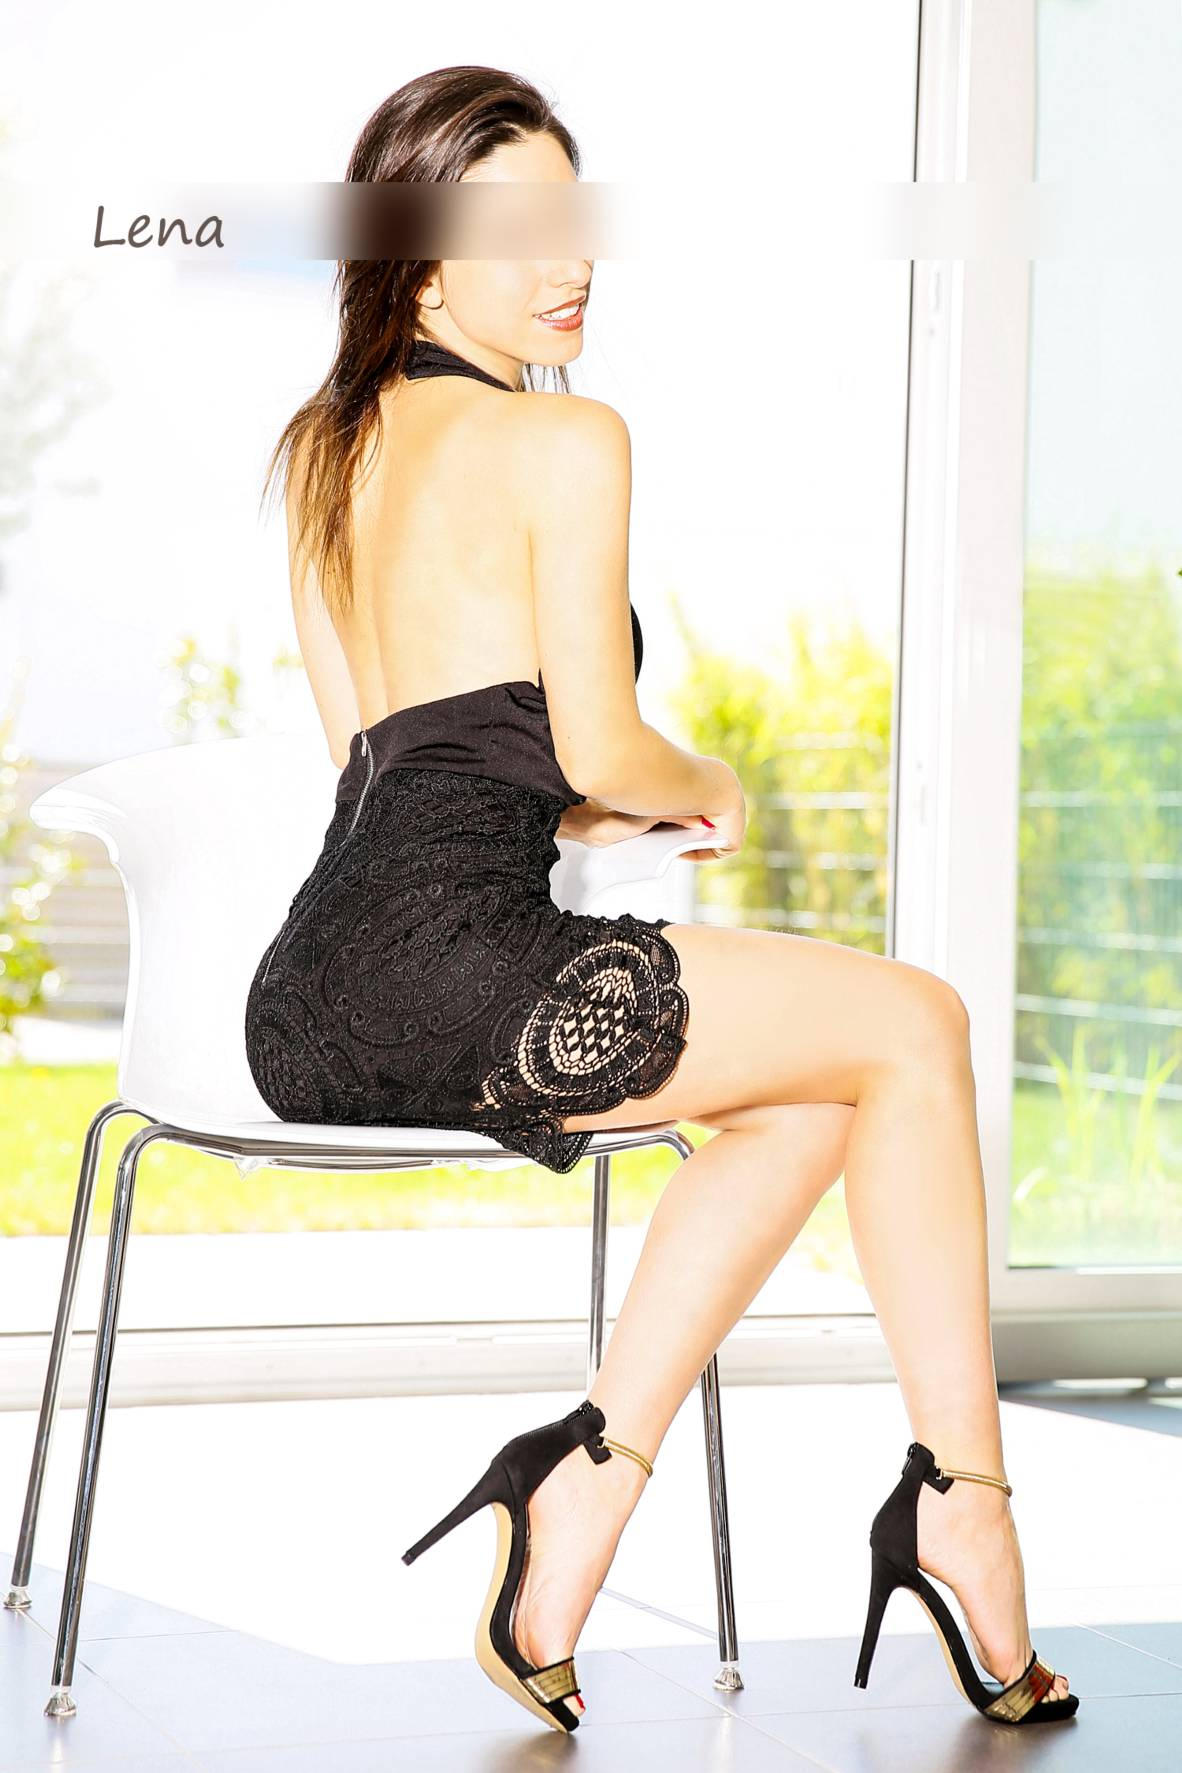 Lena May - Privater Escort Service München